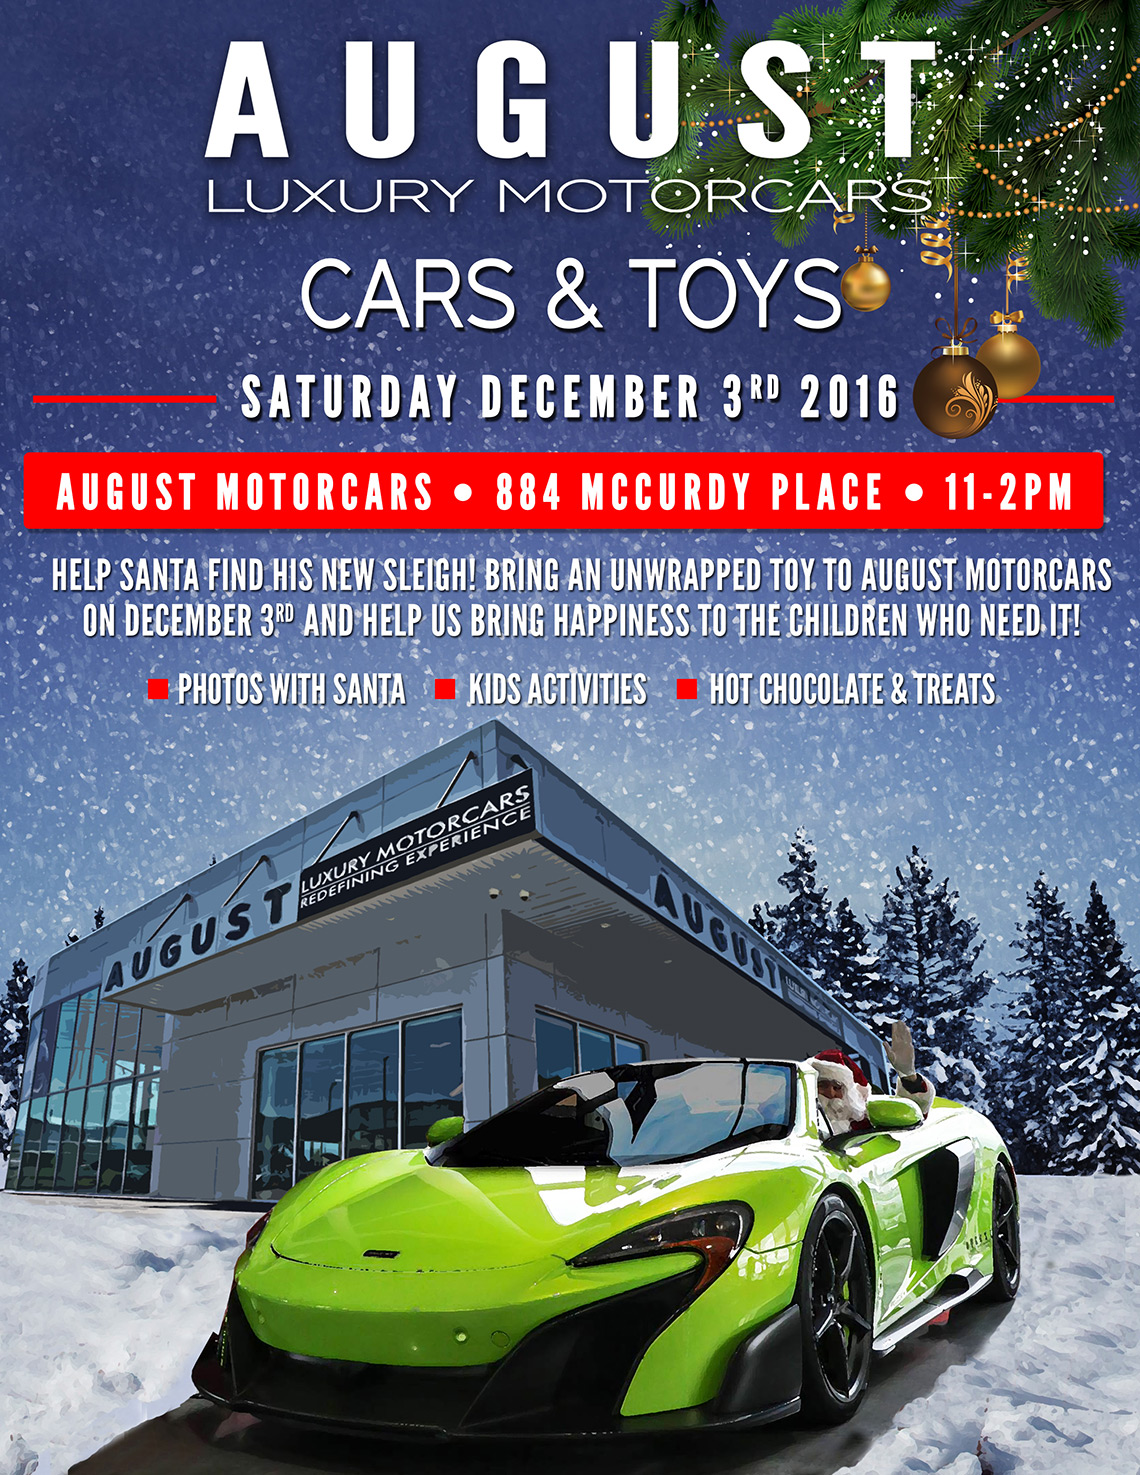 Cars & Toys Event